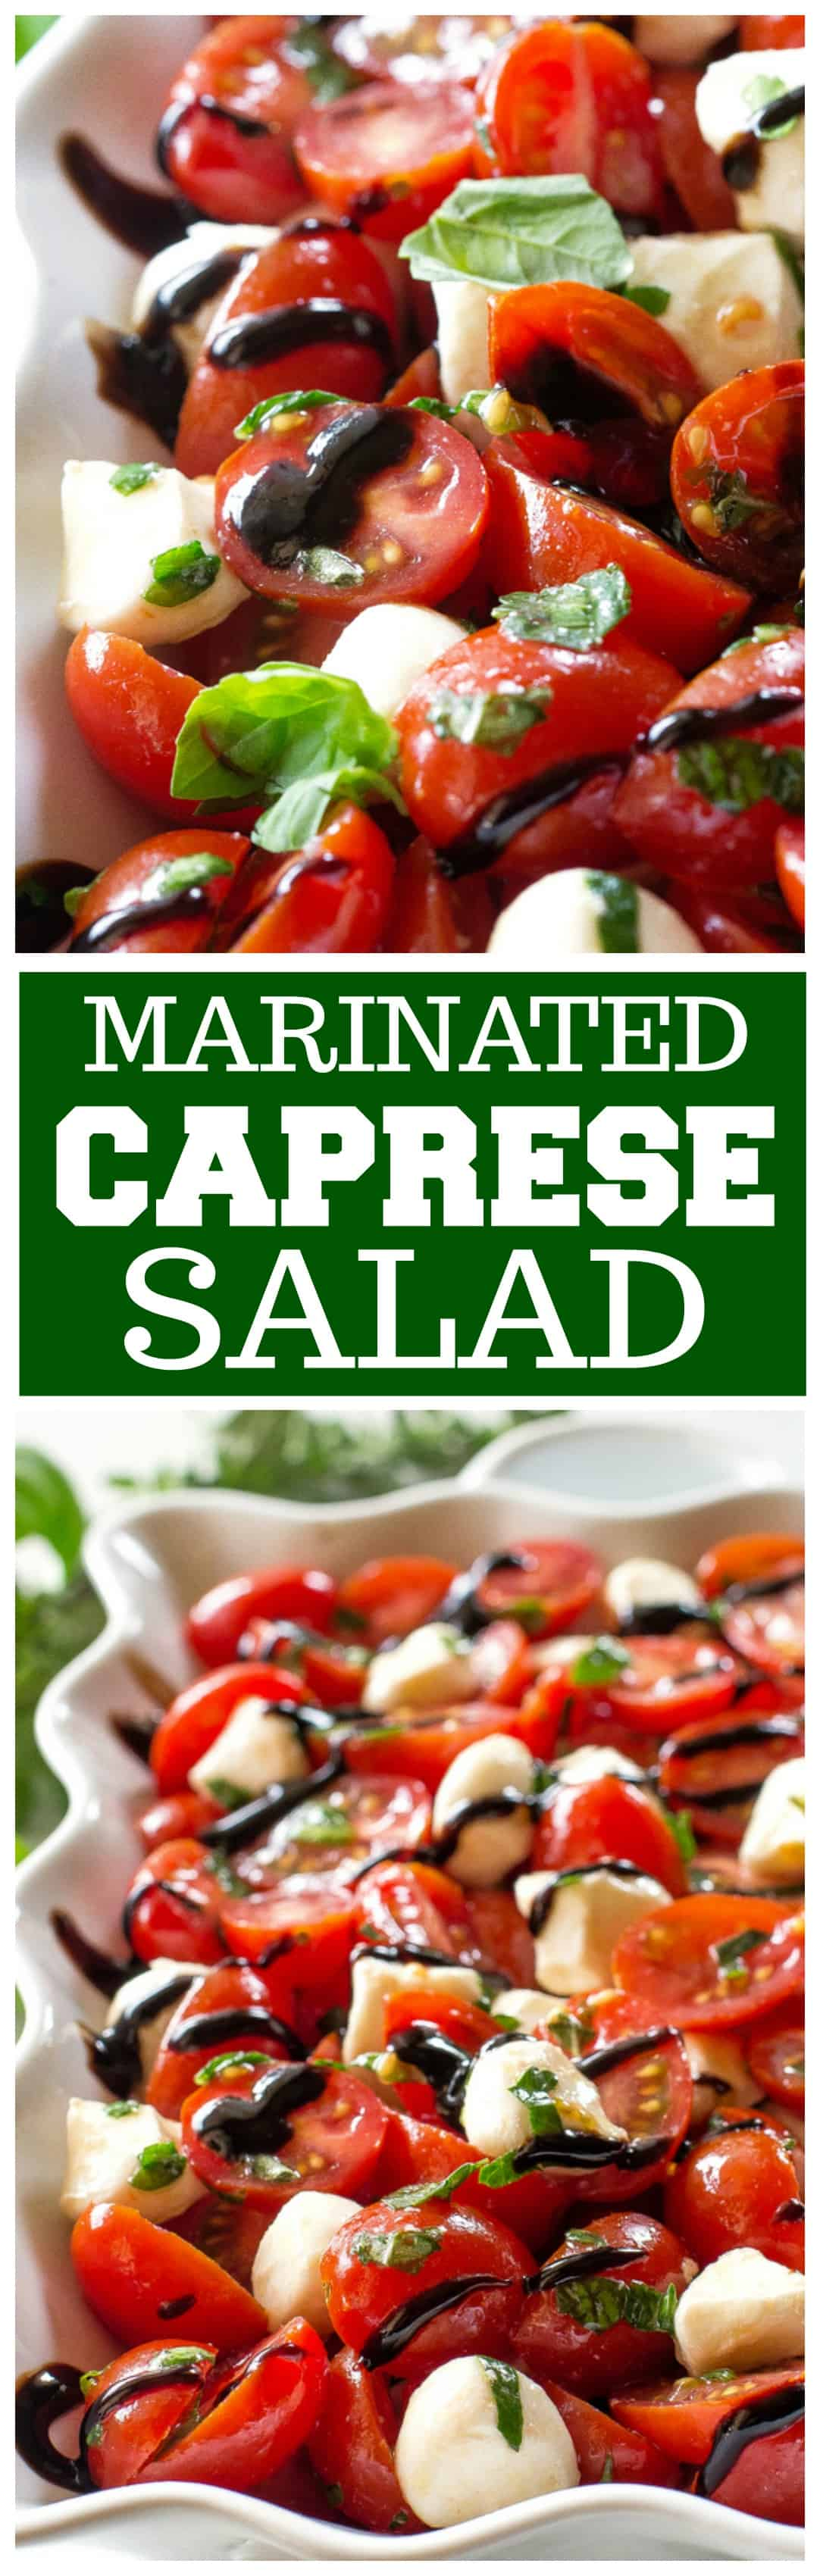 This Marinated Caprese Salad recipe is a great side dish. Marinated in balsamic dressing and herbs, it is bursting with flavor. #italian #caprese #salad #recipe